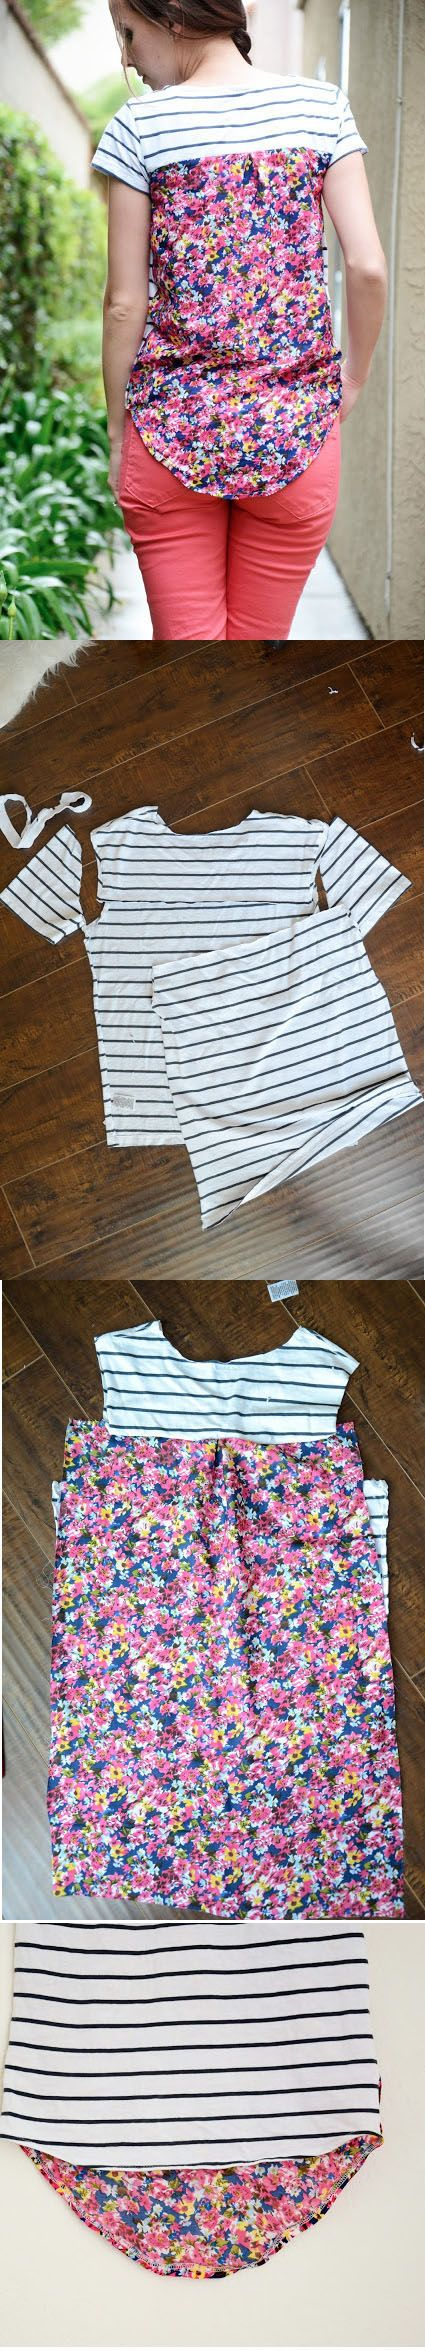 DIY IDEAS: Put the Fashion In Your Closet. Cute but I'd leave a little flag of cloth on the back put a big colorful button on the top.